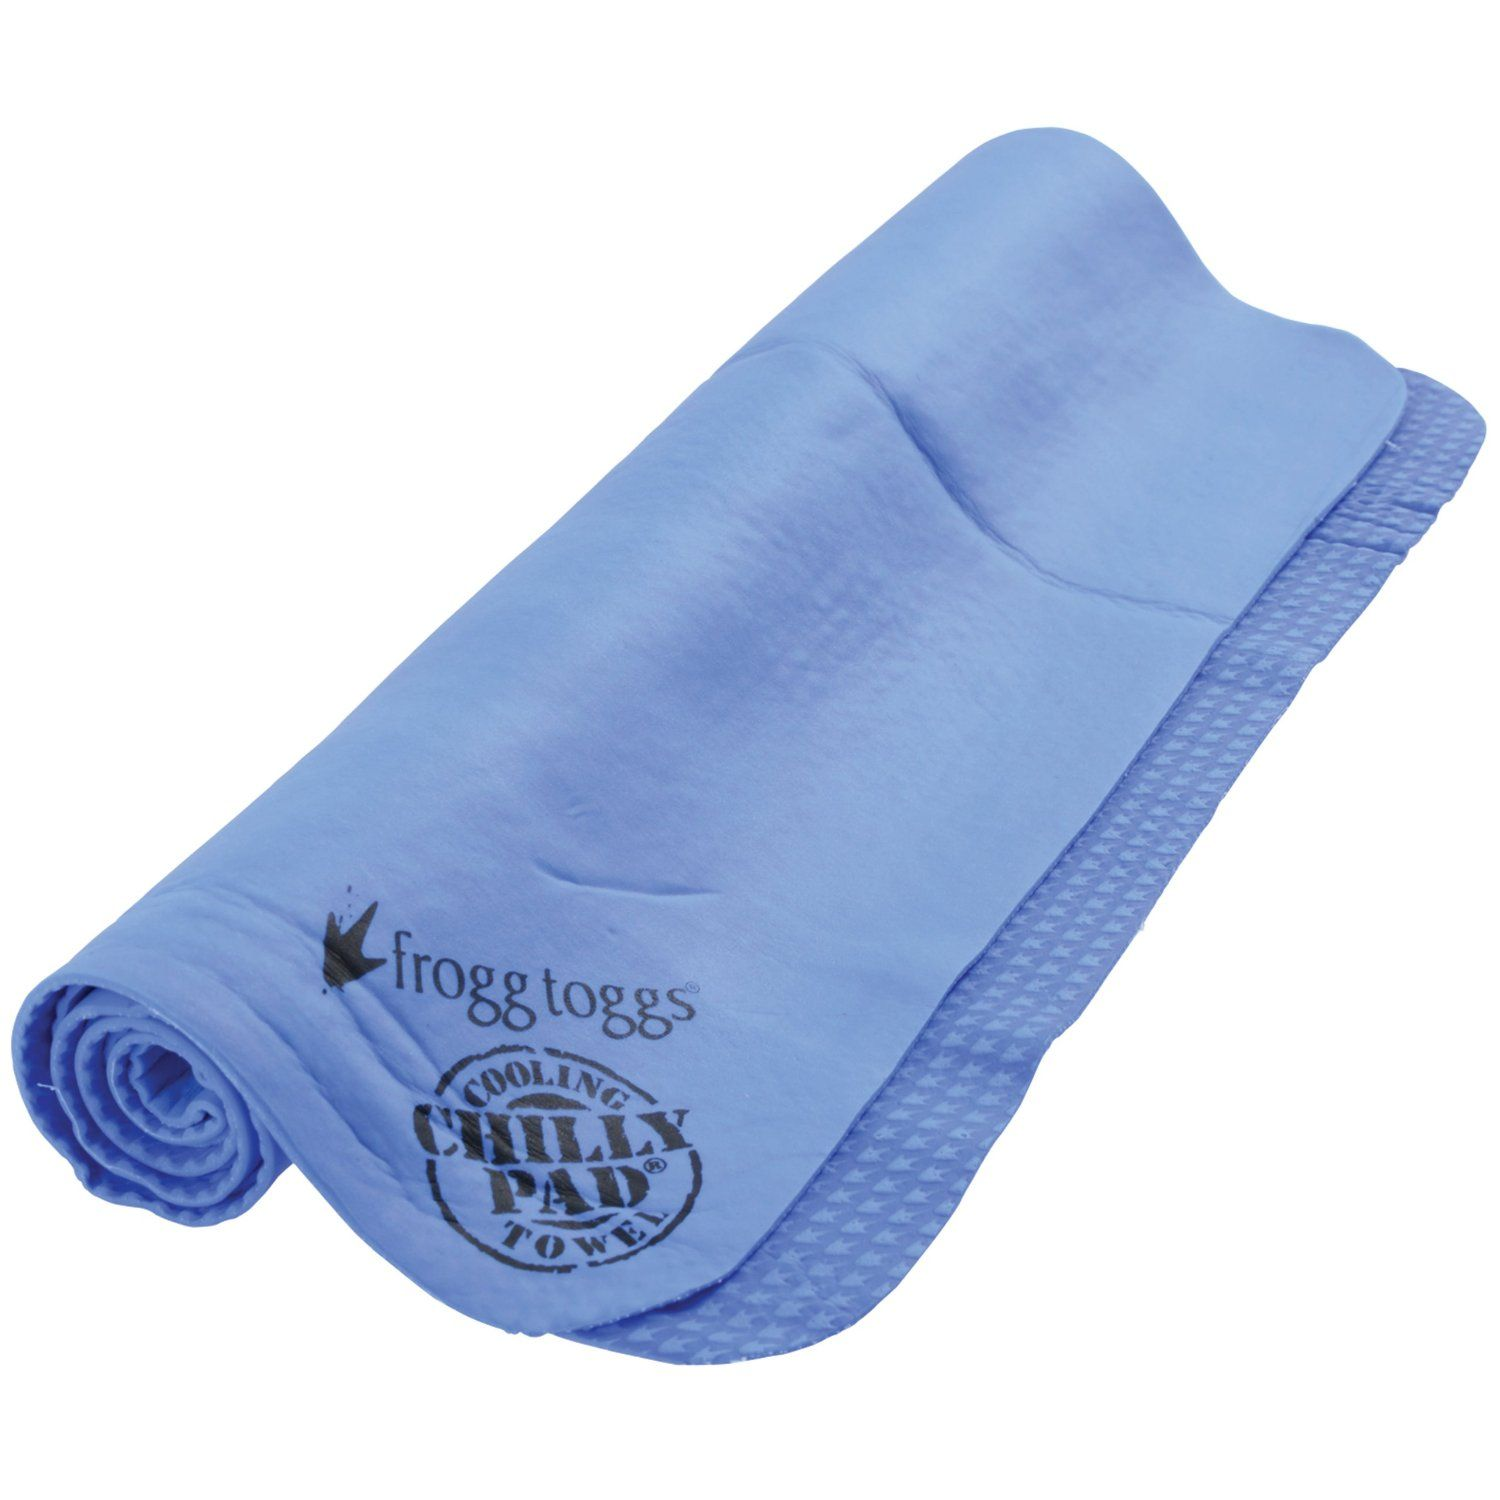 Frogg Toggs Chilly Pad Evaporative Cooling Snap Towel Only 6 99